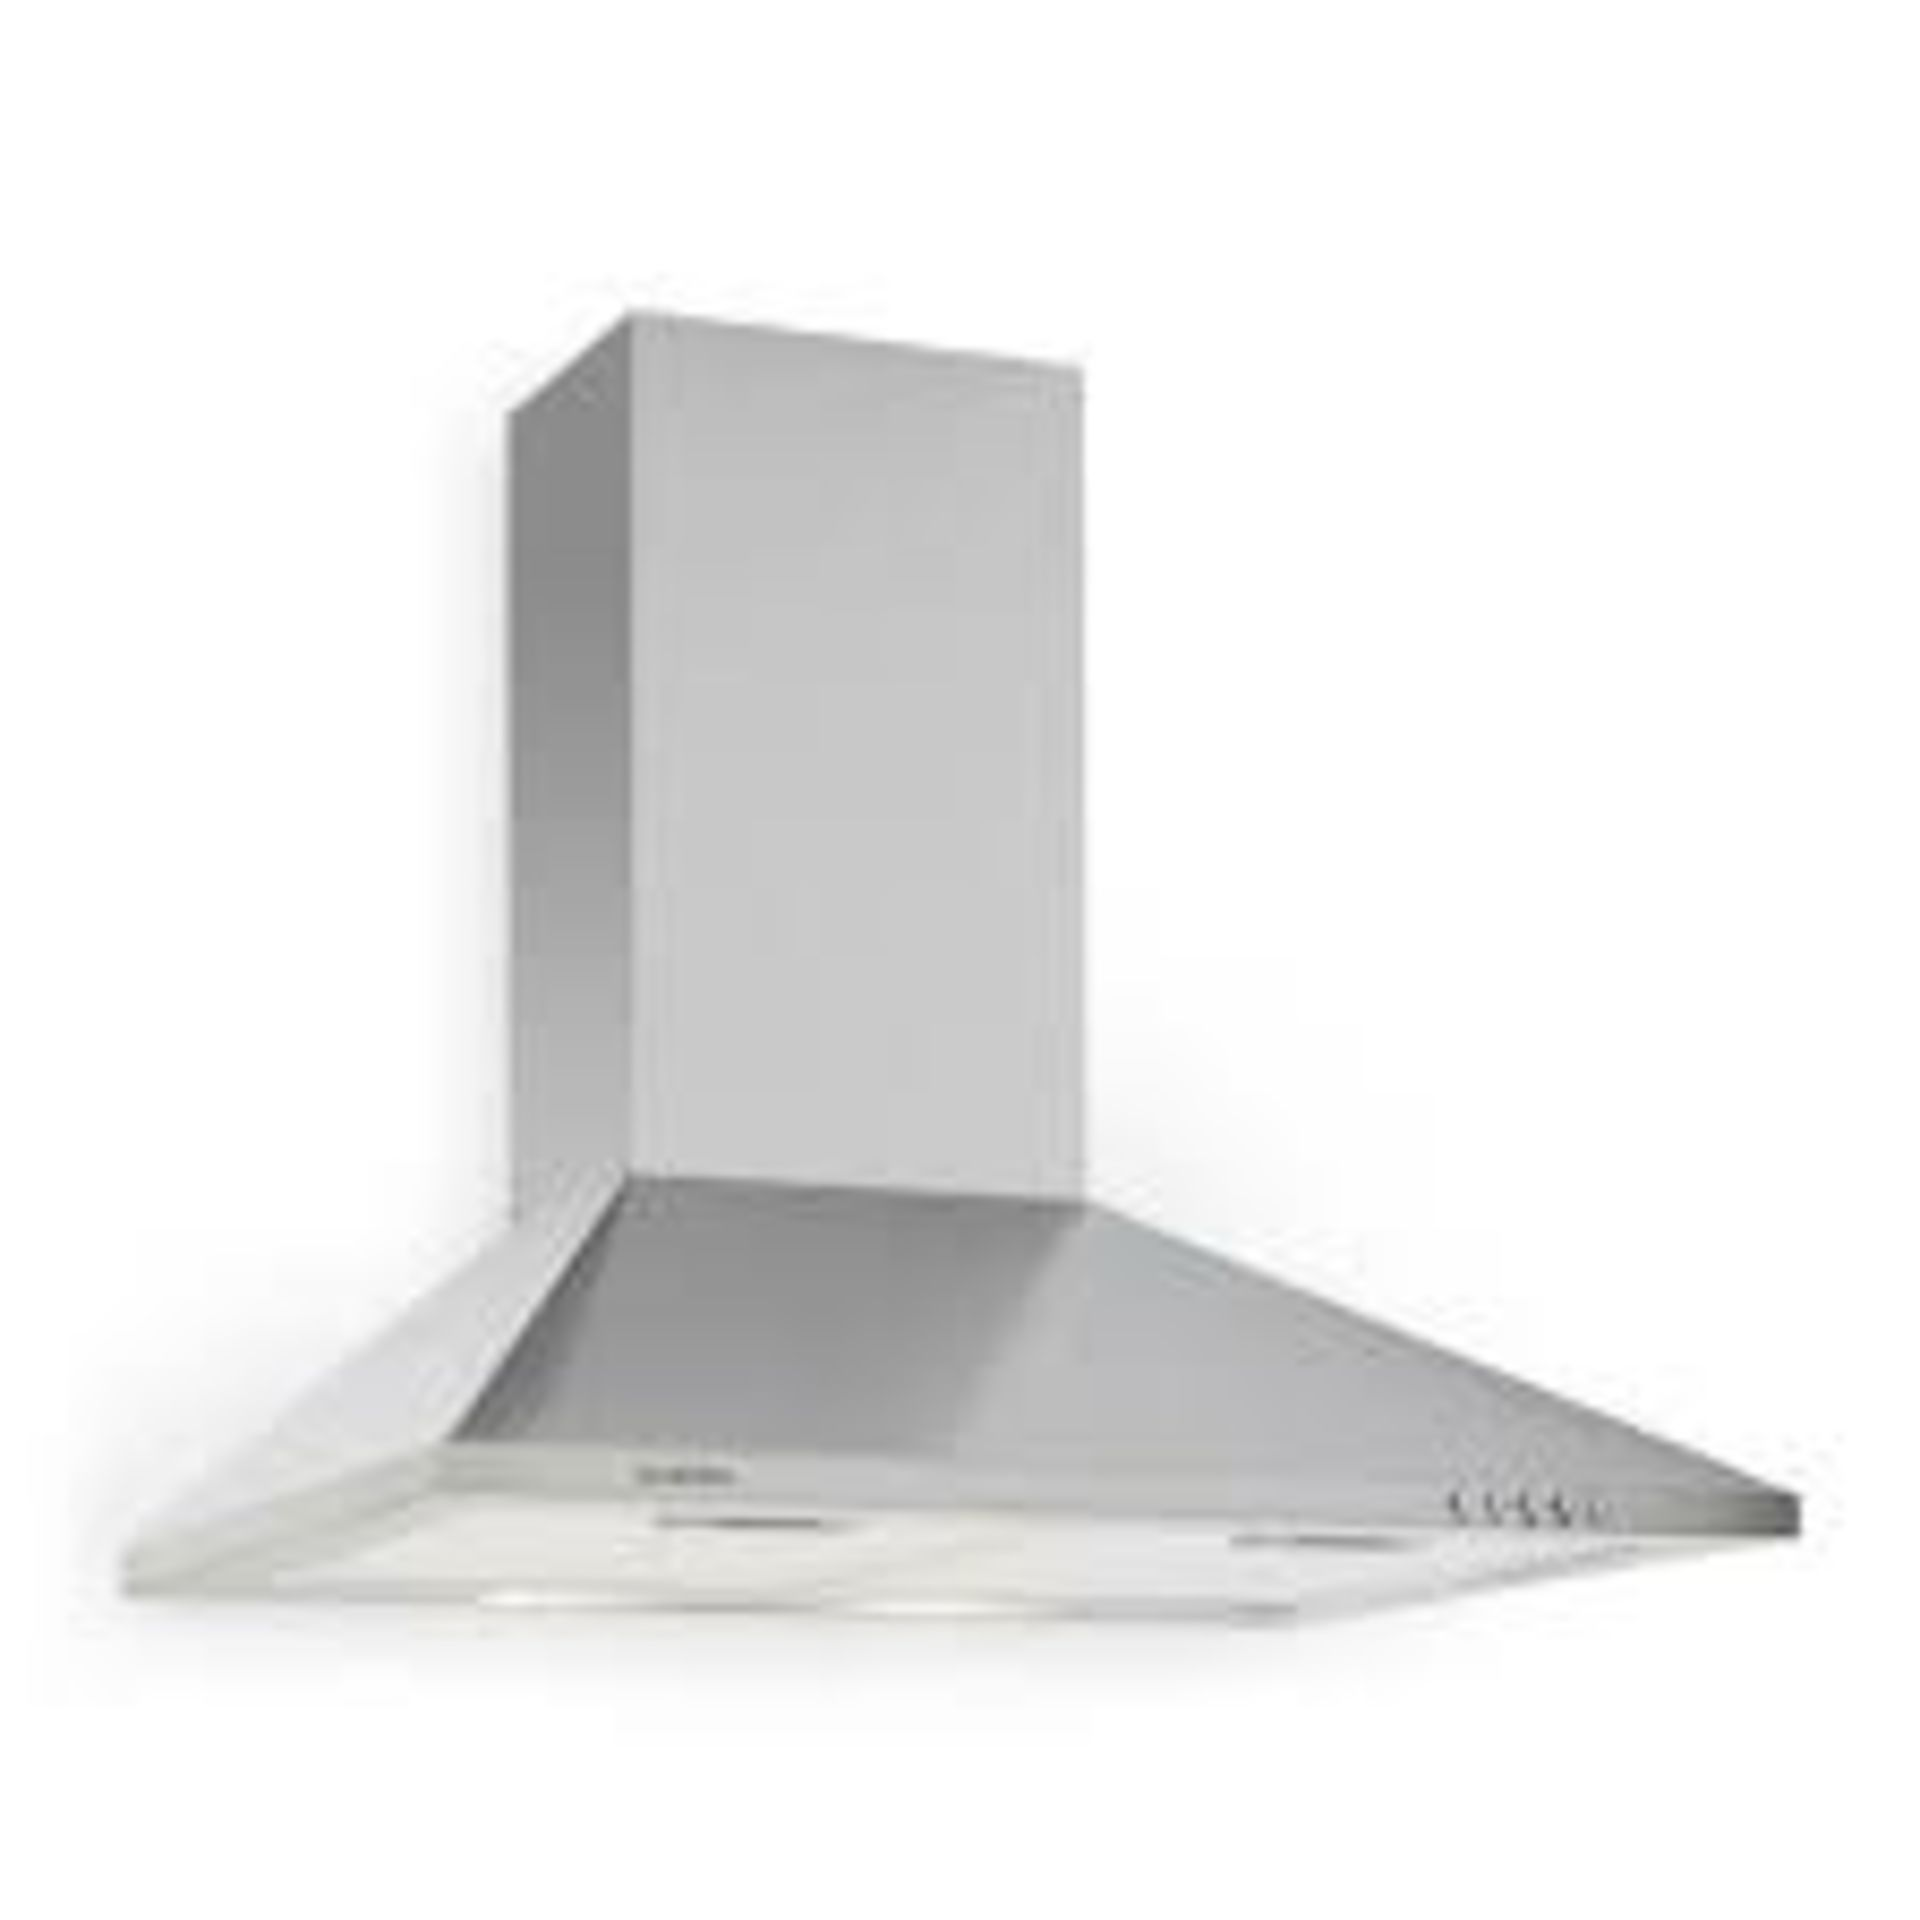 Los 380 - Boxed Stainless Steel 55cm Chimney Cooker Hood RRP £50 (18561) (Appraisals Available)